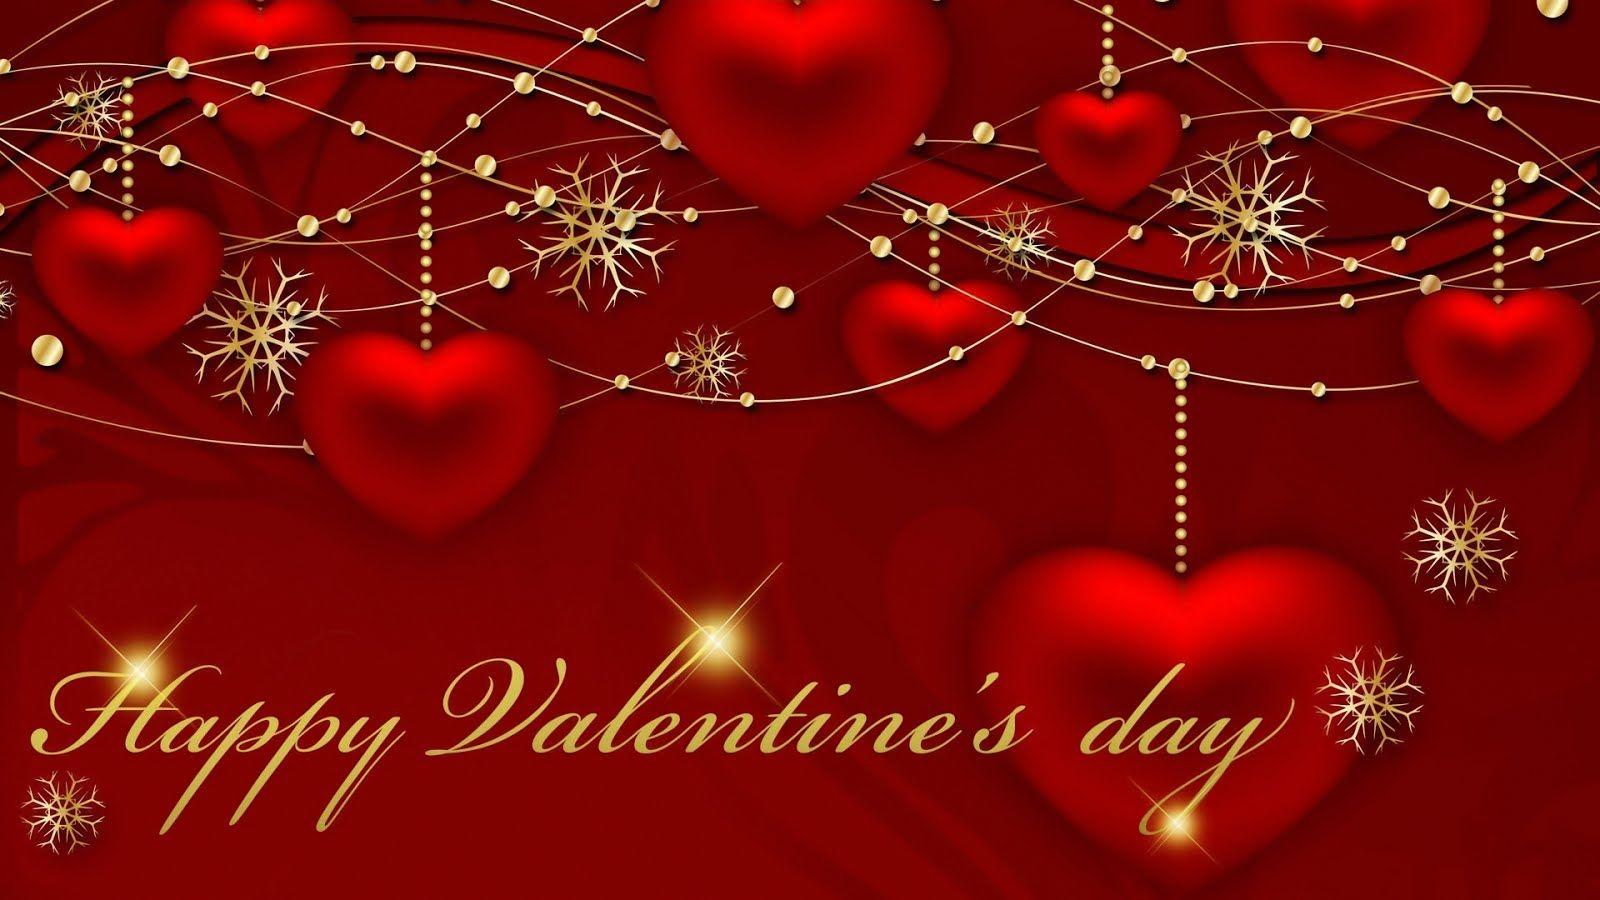 Happy**} Valentines Day 2018 Hd Photos | Pictures | Wallpapers ...